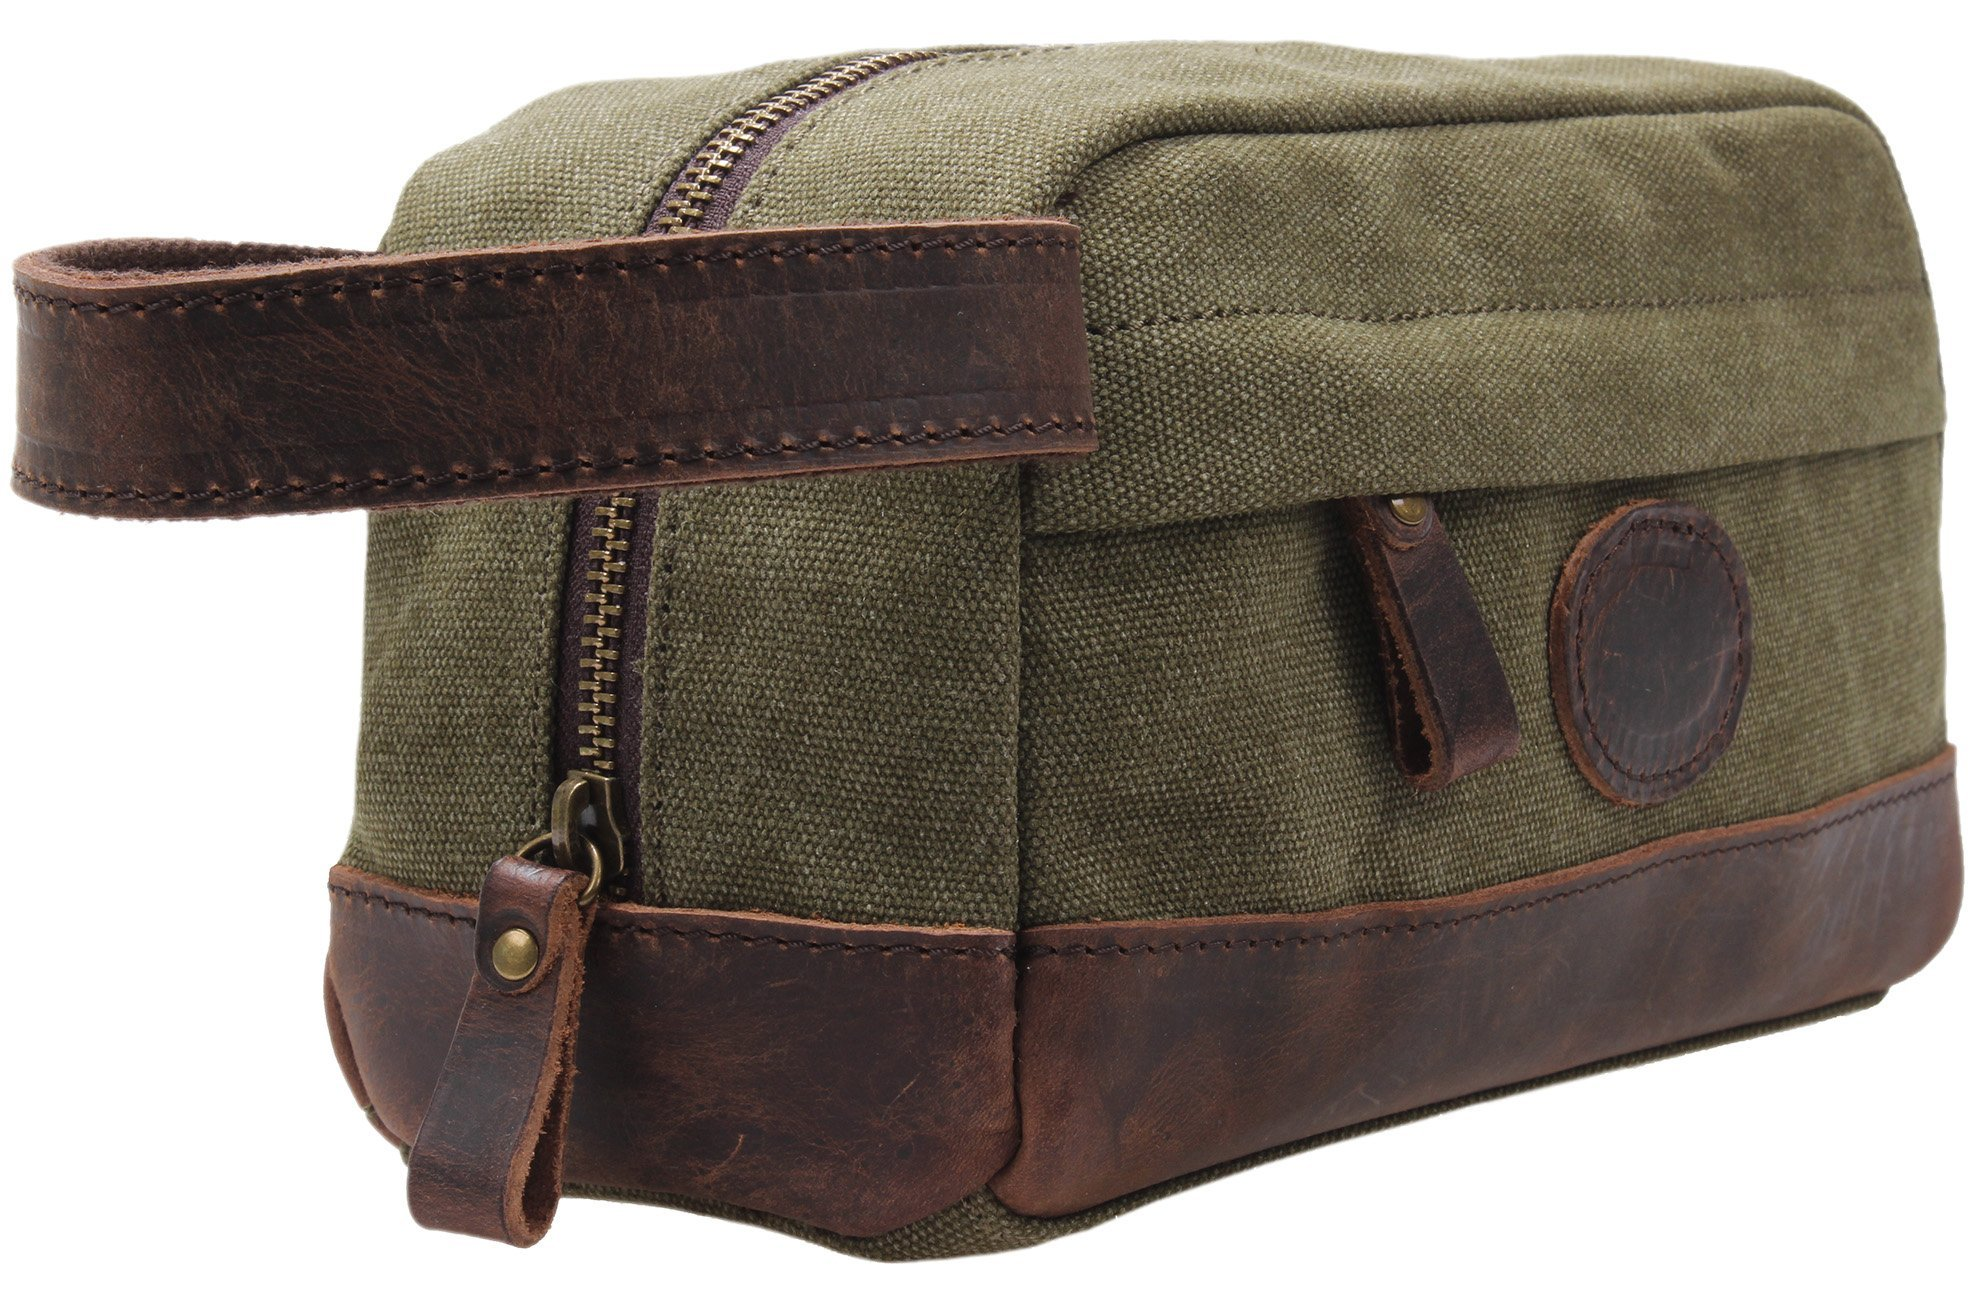 My style garment MSG Vintage Leather Canvas Travel Toiletry Bag Shaving Dopp  Kit  A001 958dfb1f24992